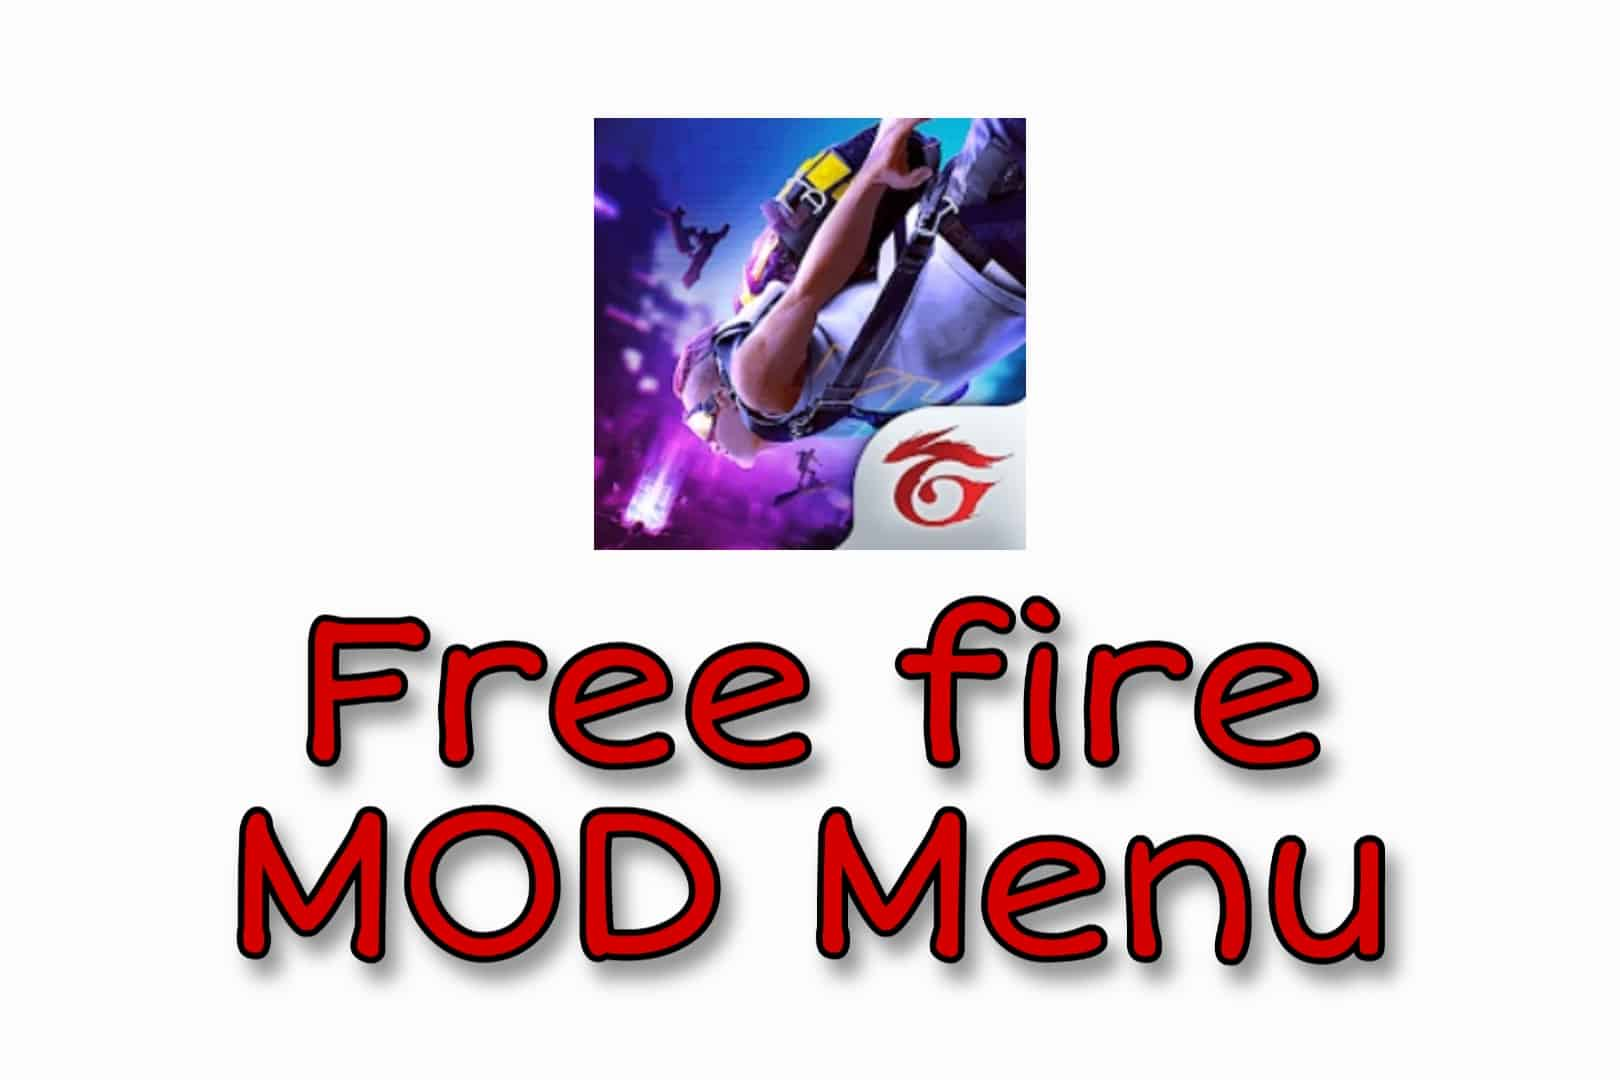 How to download free fire mod 1.57.0? - [Unlimited diamond/Aimbot/No-Recoil] - MOD Menu free fire